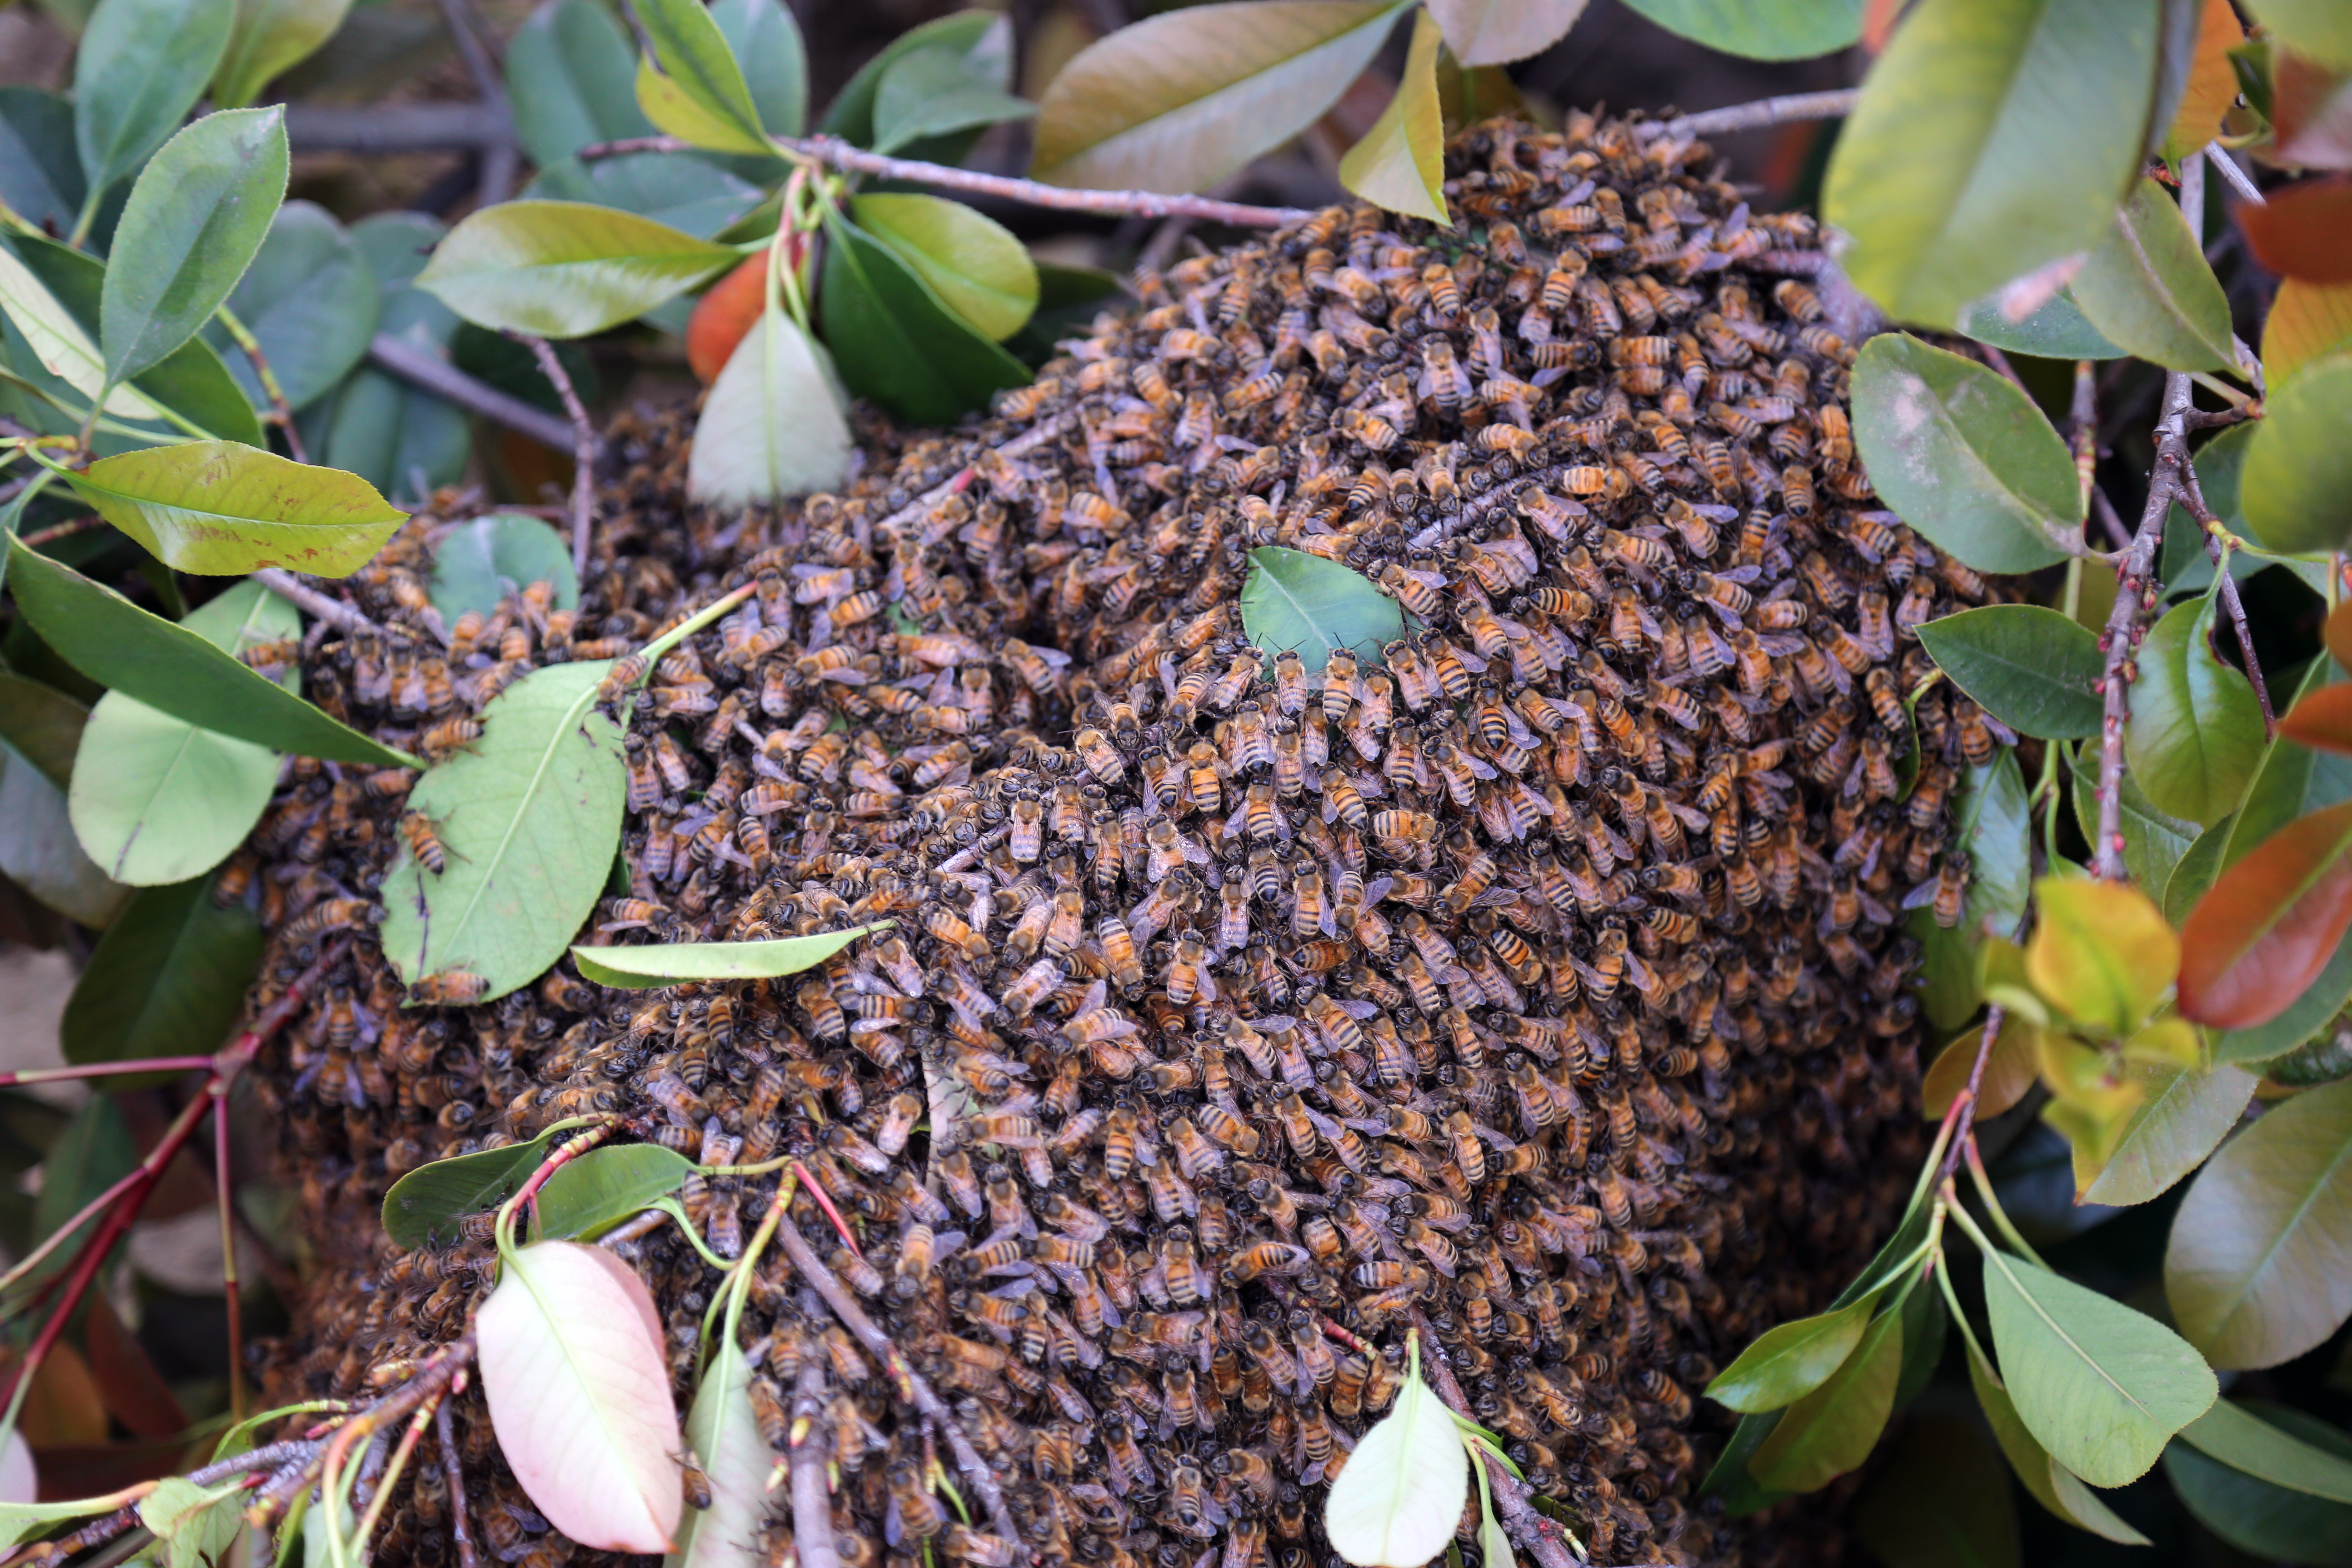 Safely Relocating a Swarm of Bees after the Almond Bloom